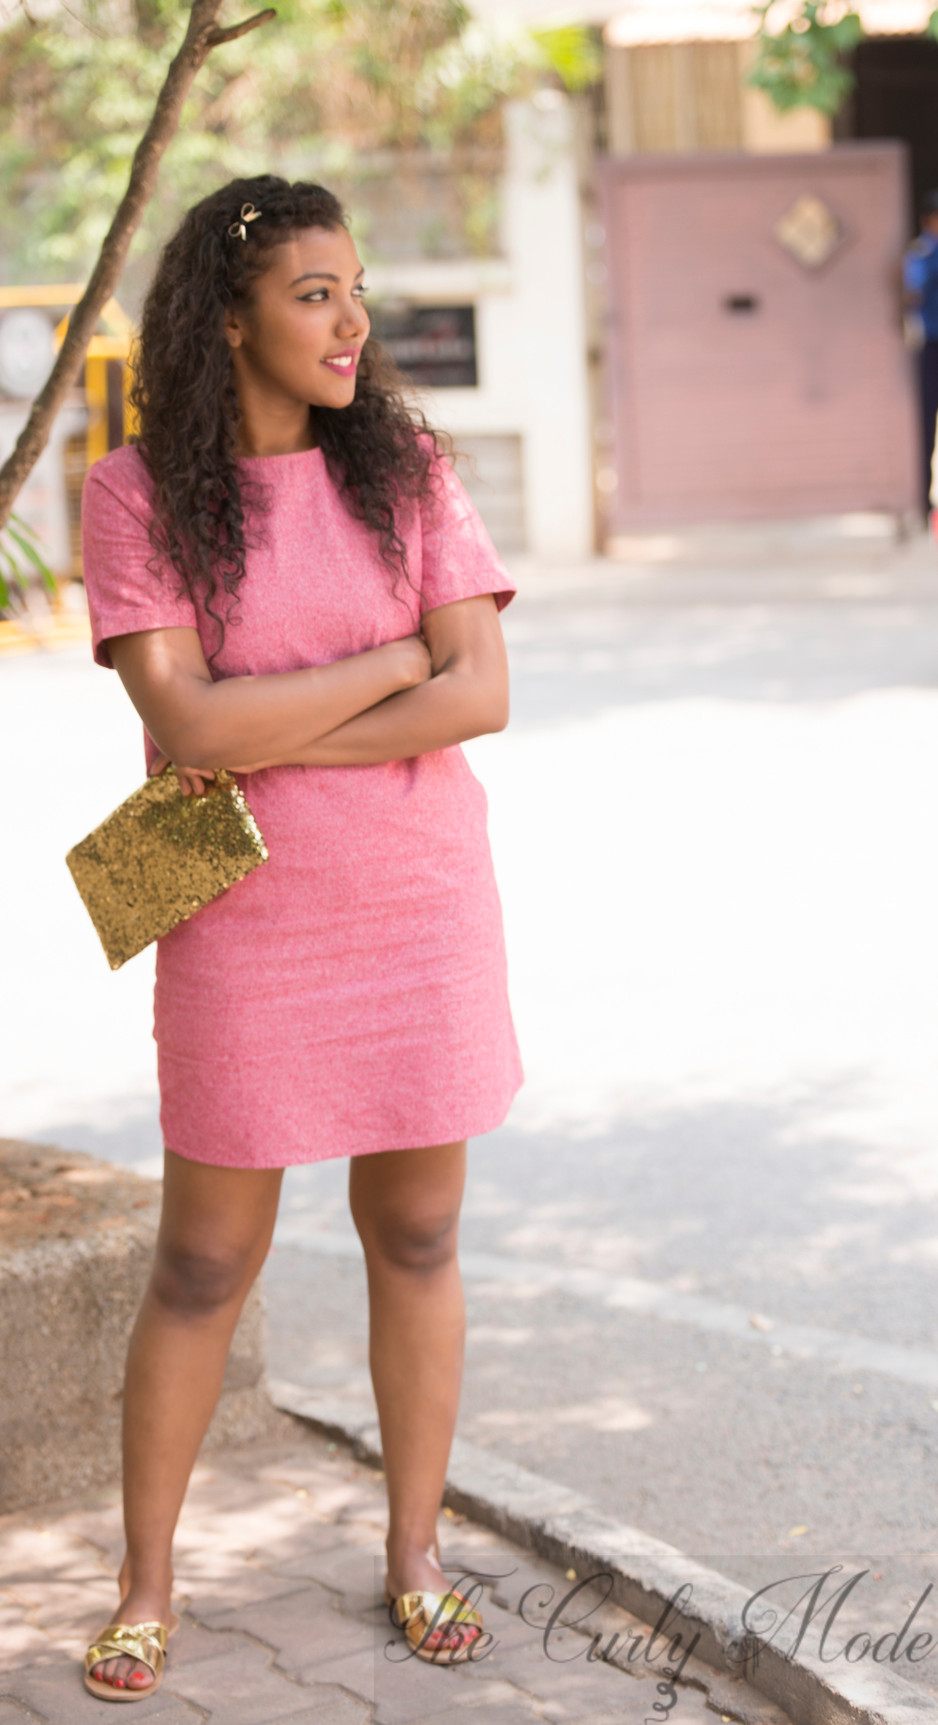 3 Ways to wear a Shift Dress - Look #3 - The Girl